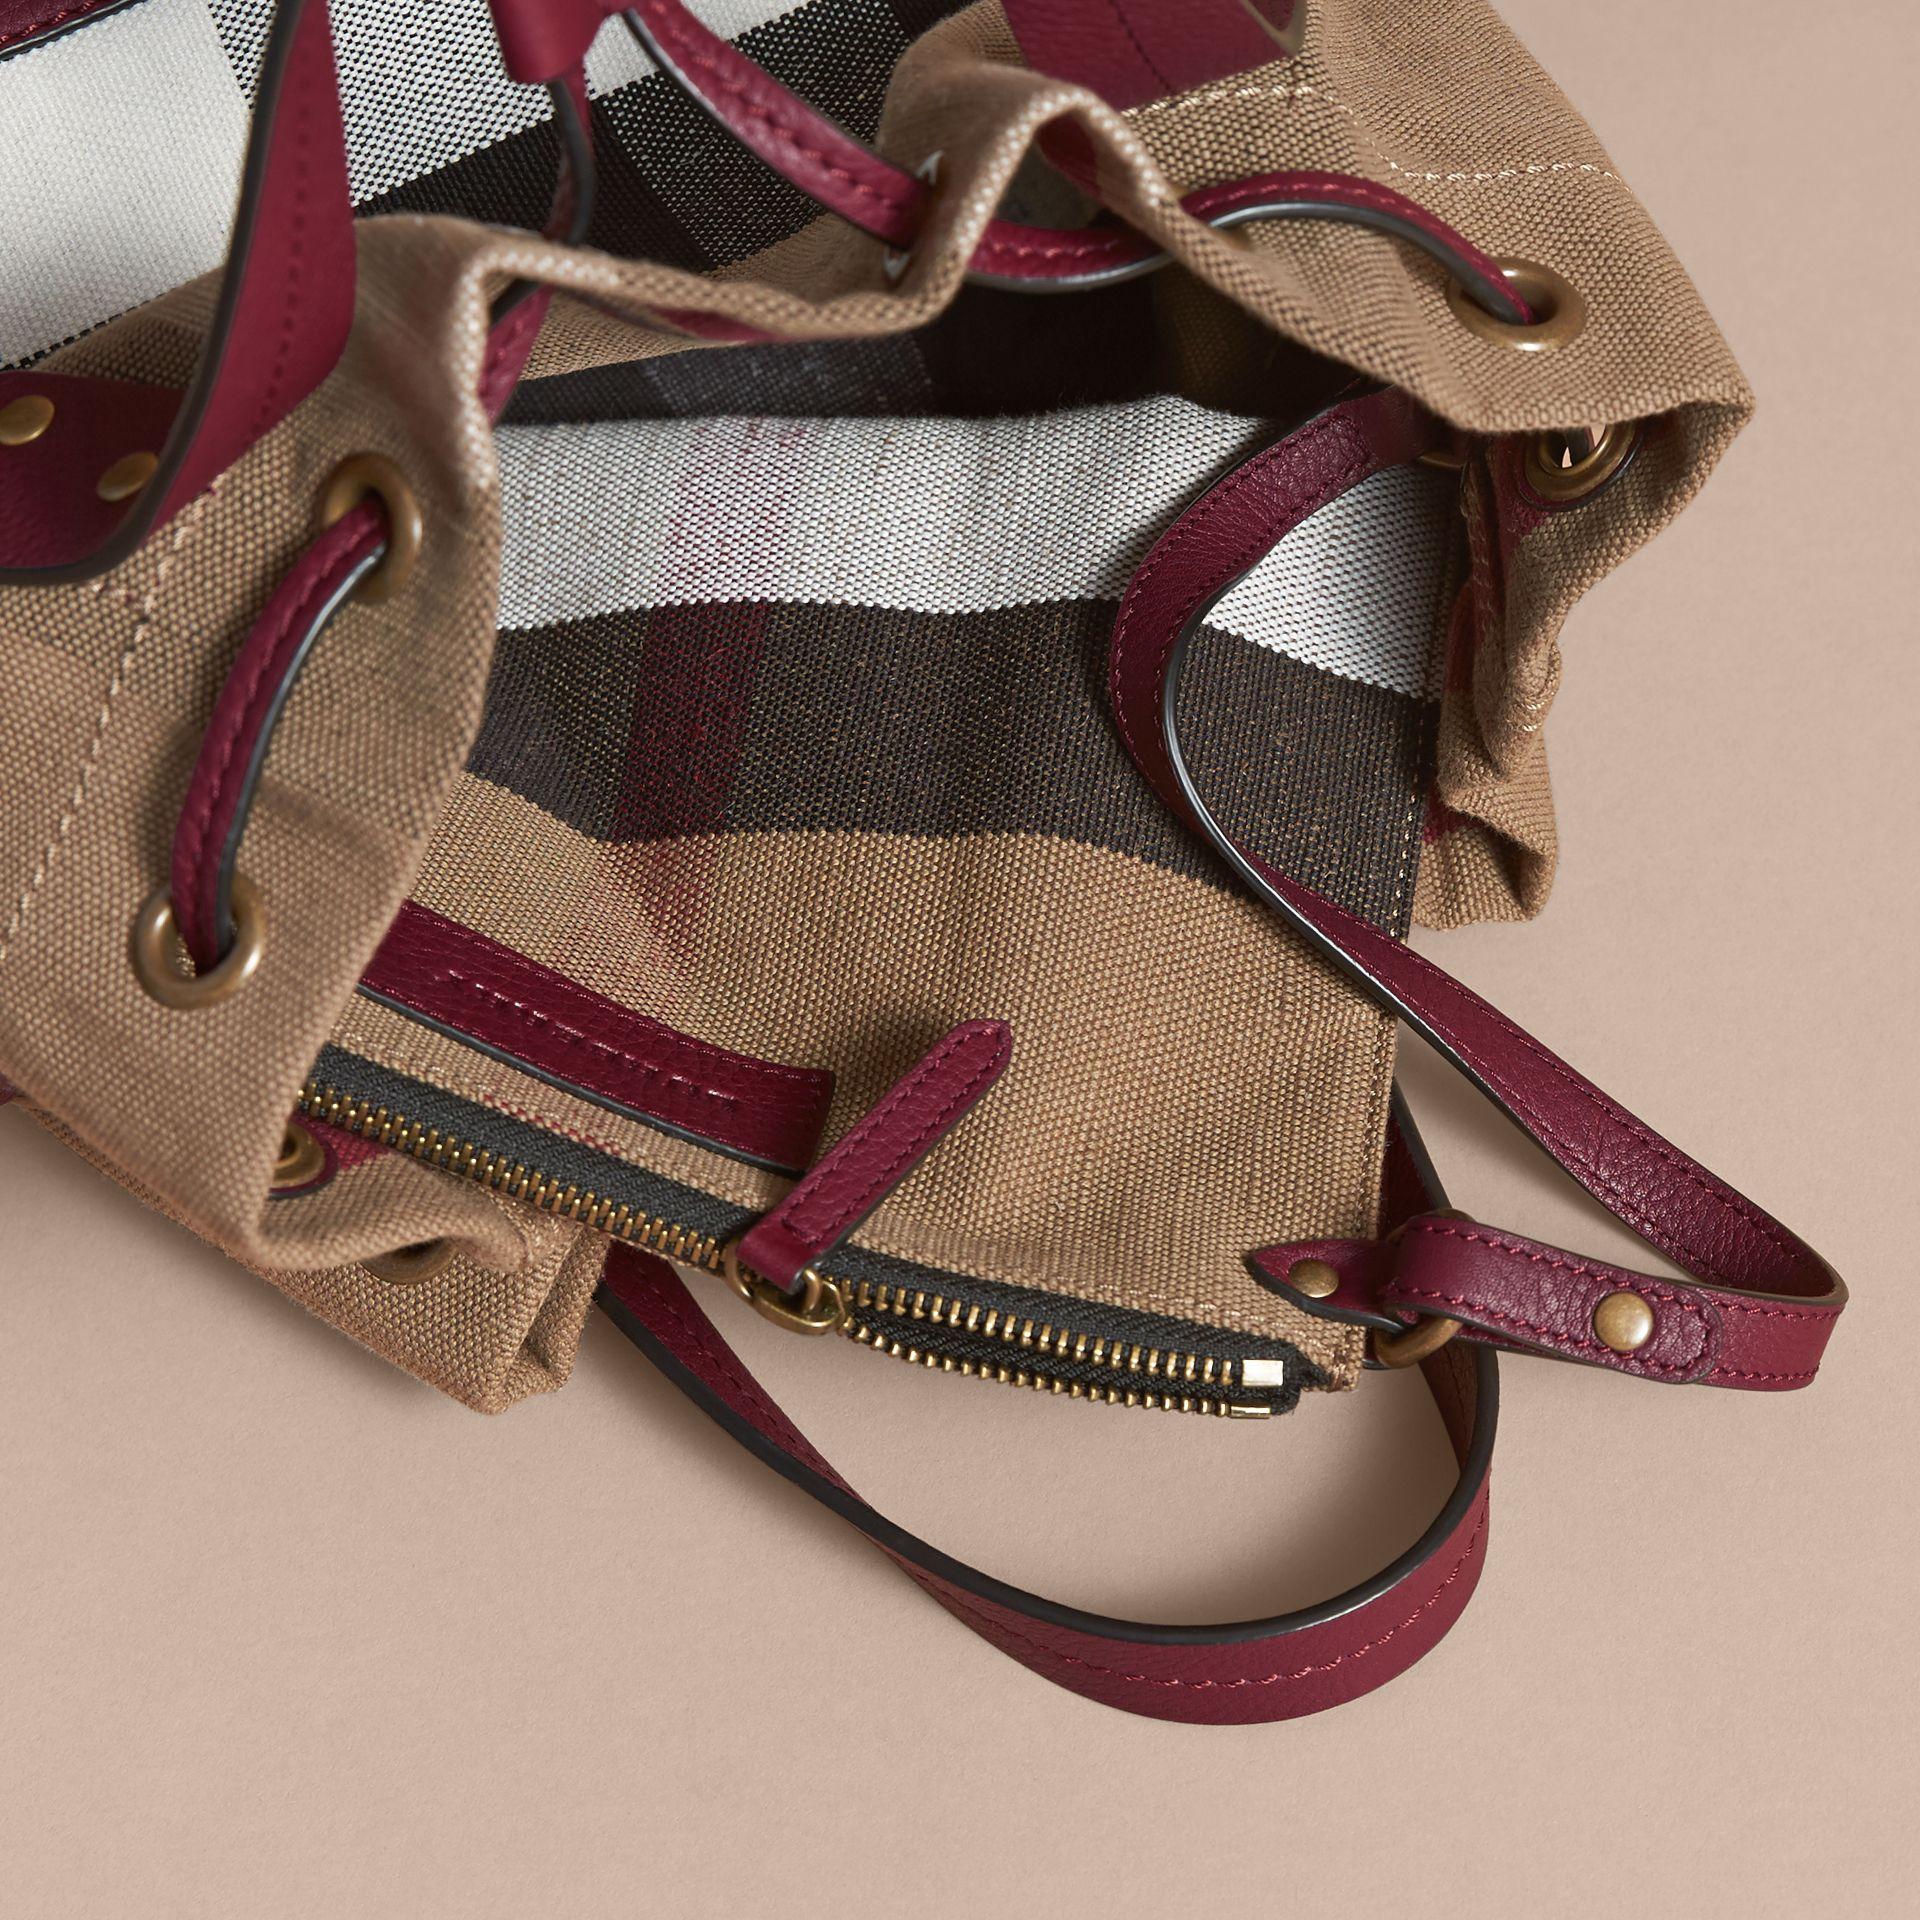 Small Canvas Check and Leather Bucket Bag in Burgundy Red - Women | Burberry - gallery image 6